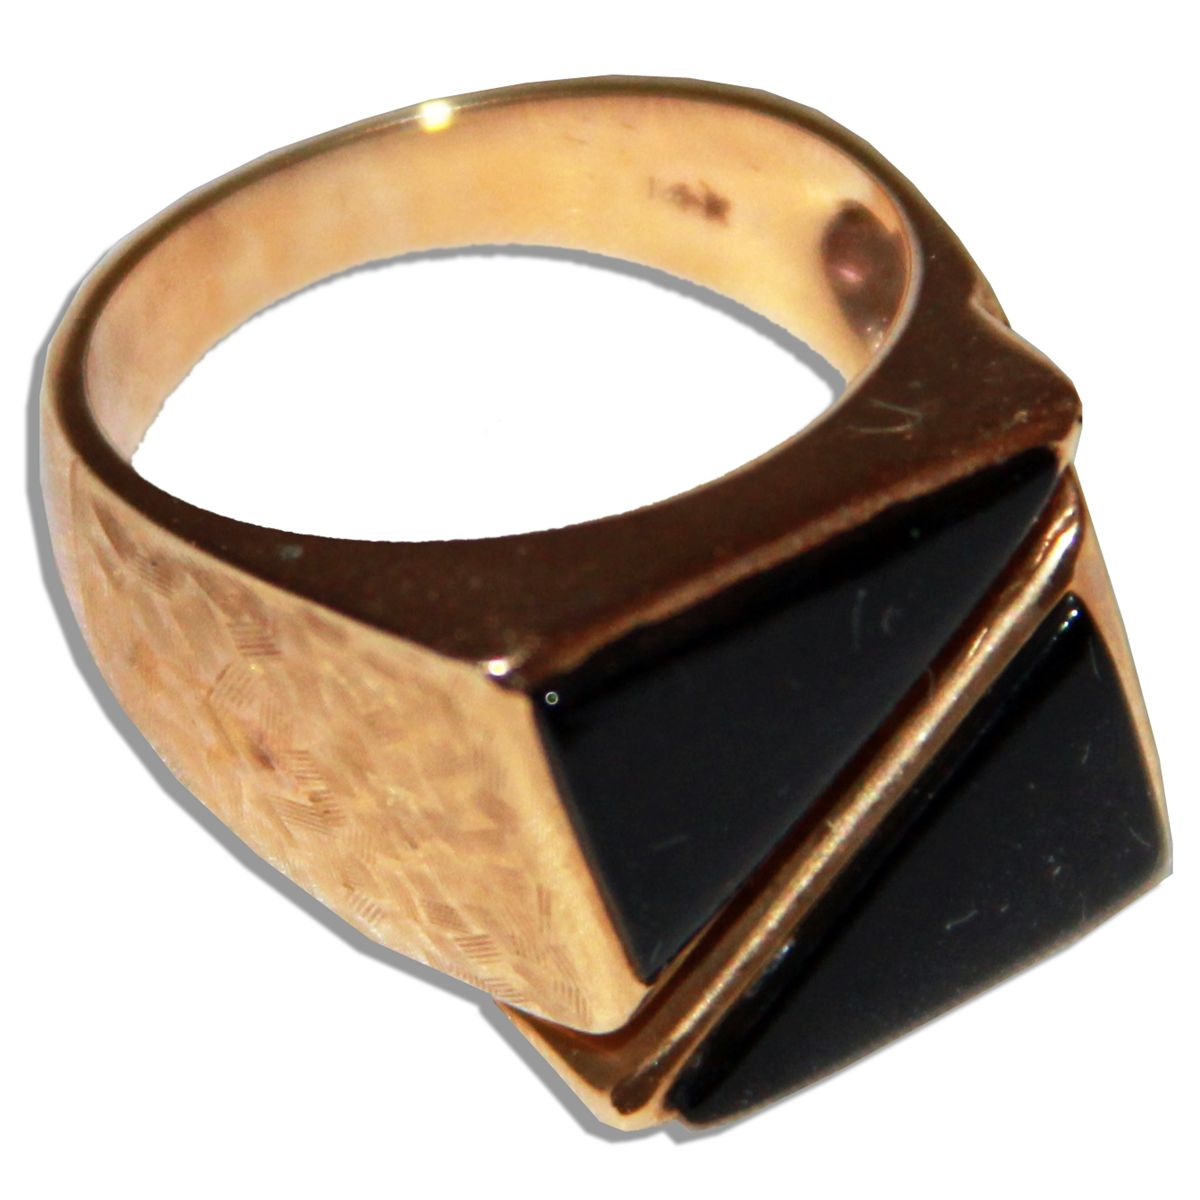 Arthur Ashe's Personally Owned Gold Ring